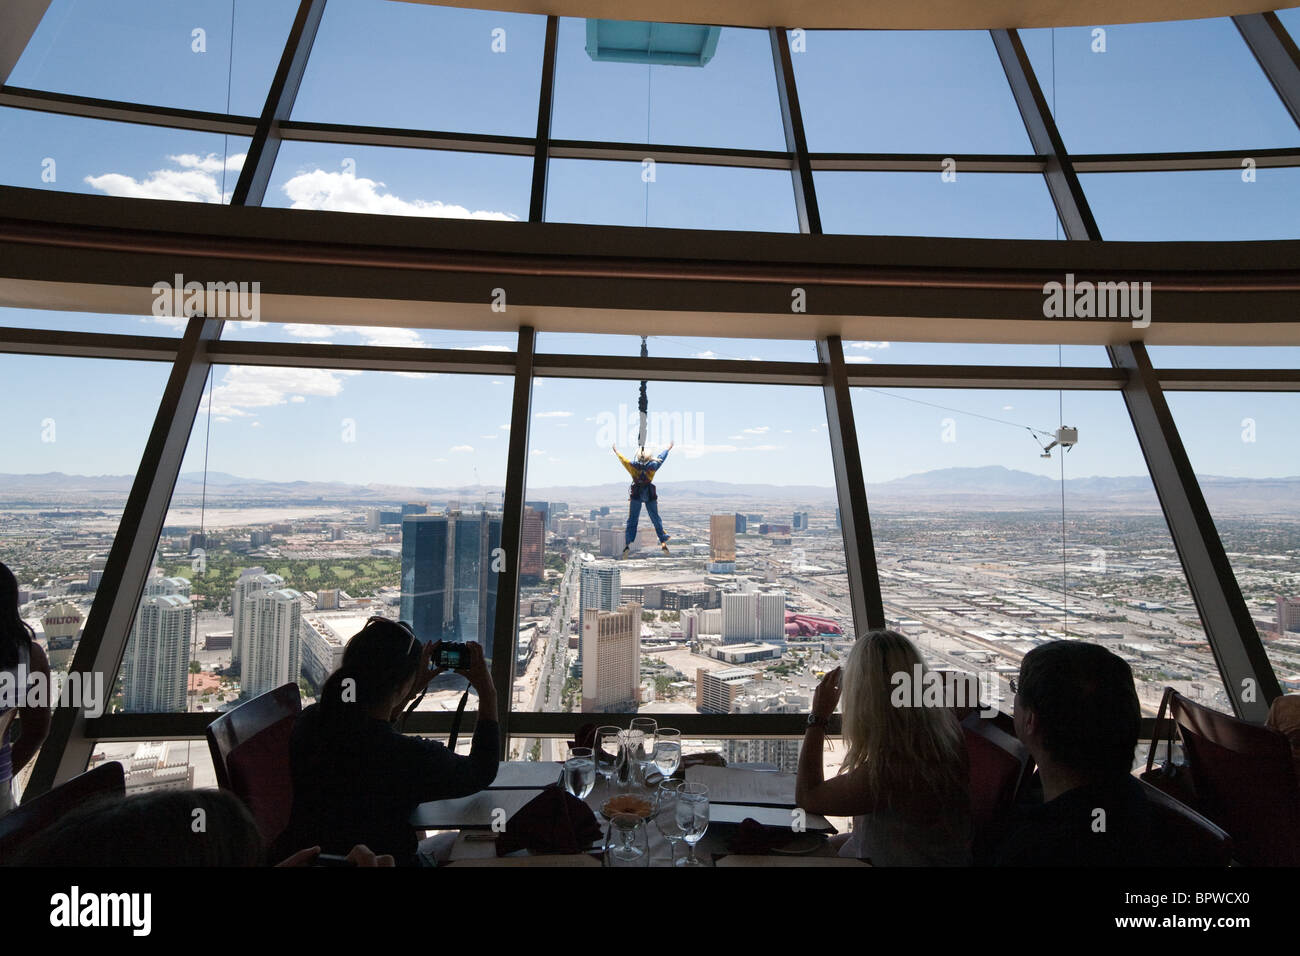 Stratosphere Restaurant At The Top